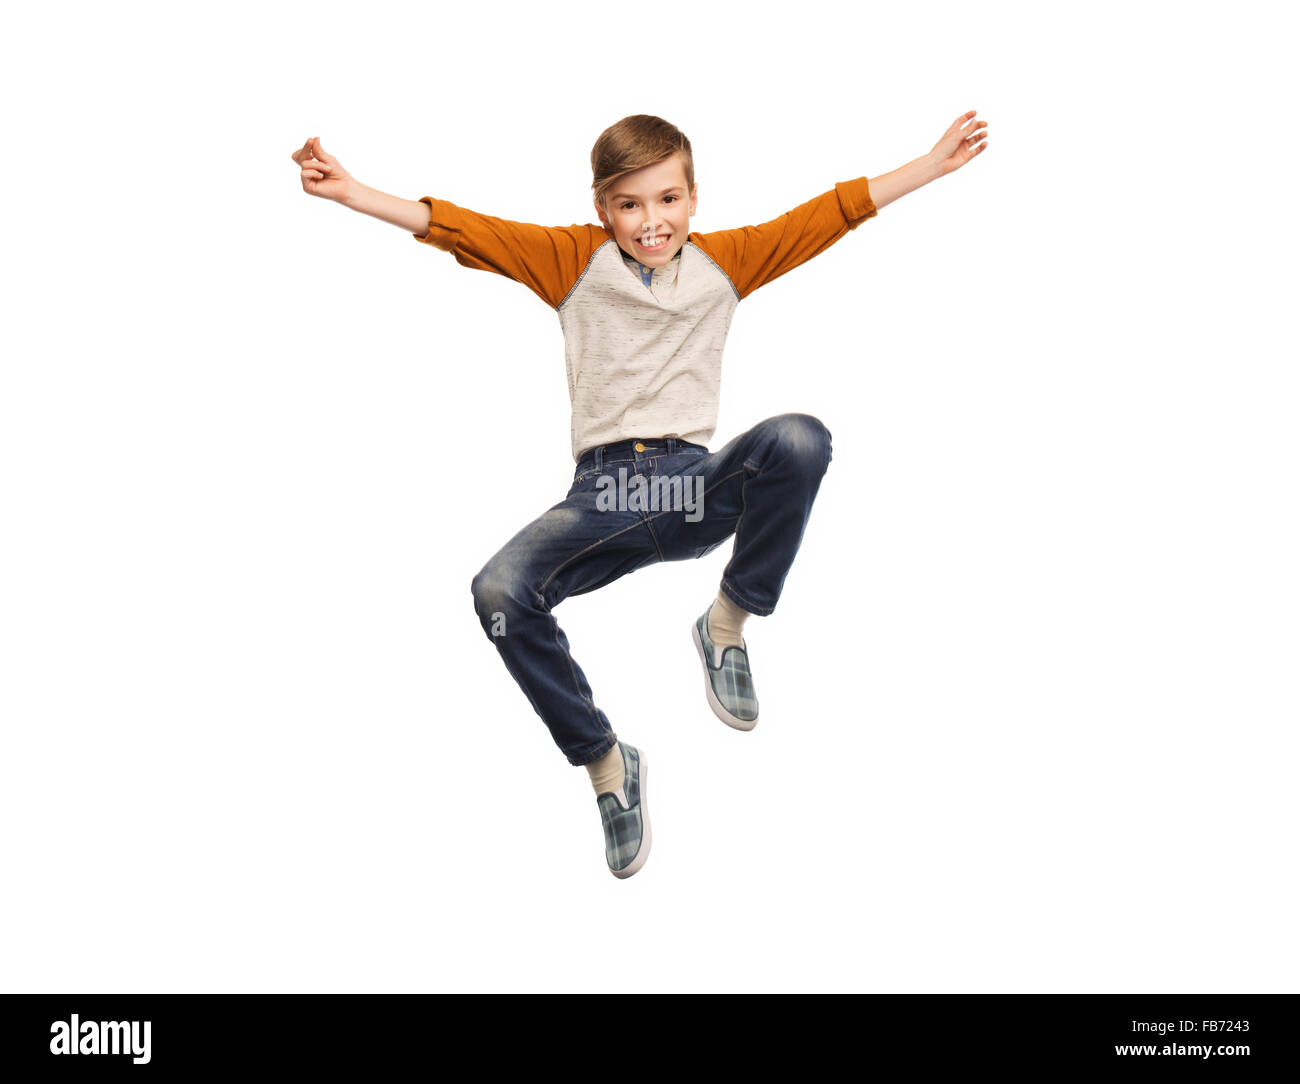 happy smiling boy jumping in air - Stock Image